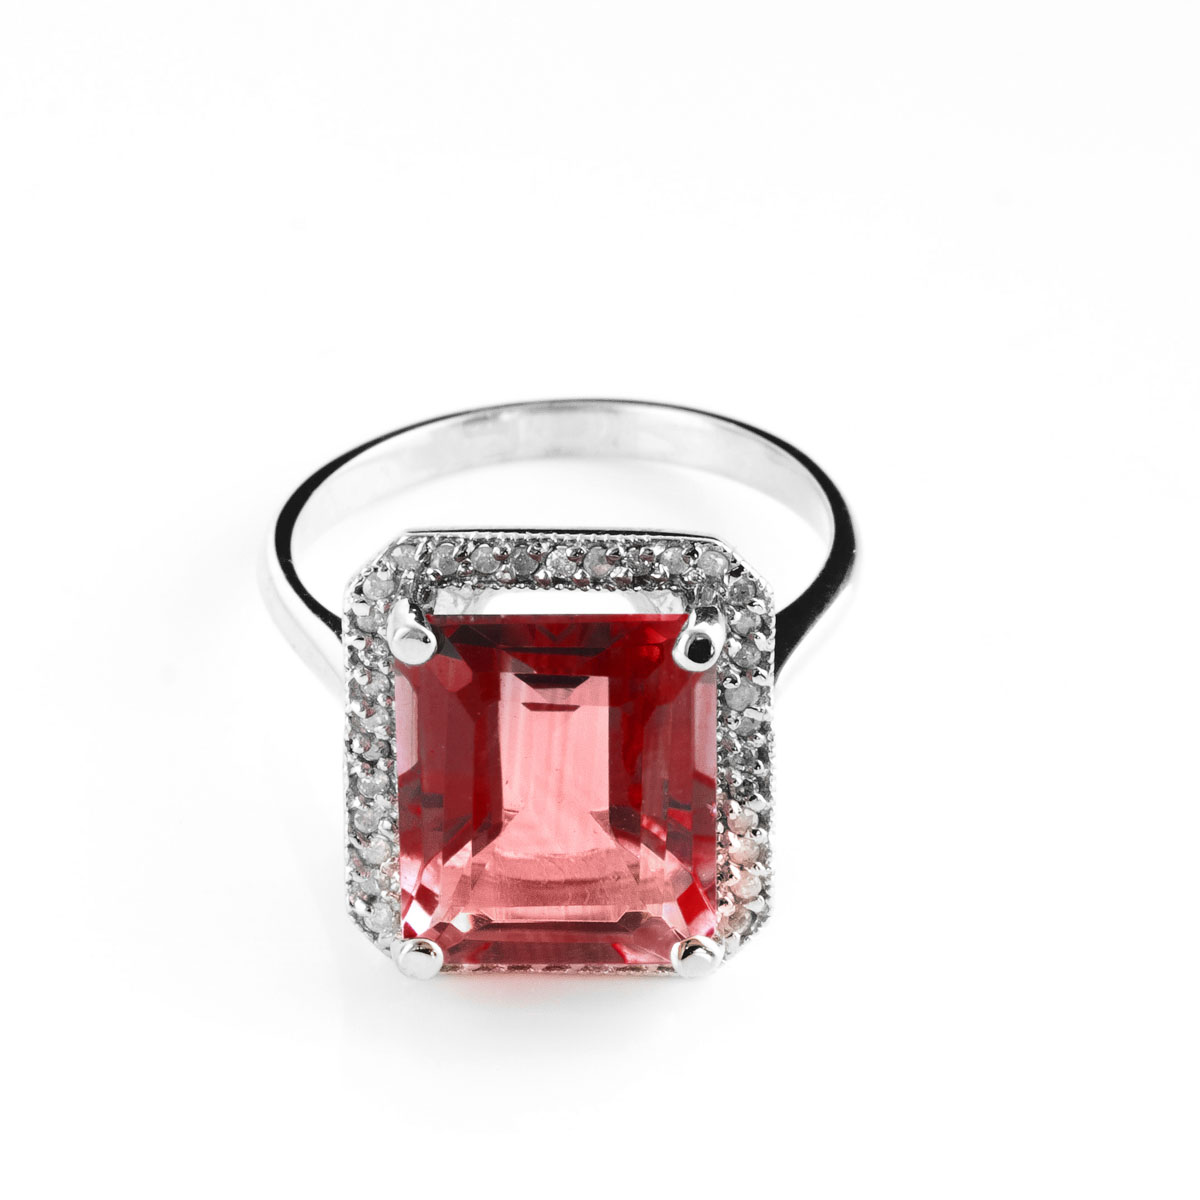 Garnet Halo Ring 7.7 ctw in 18ct White Gold